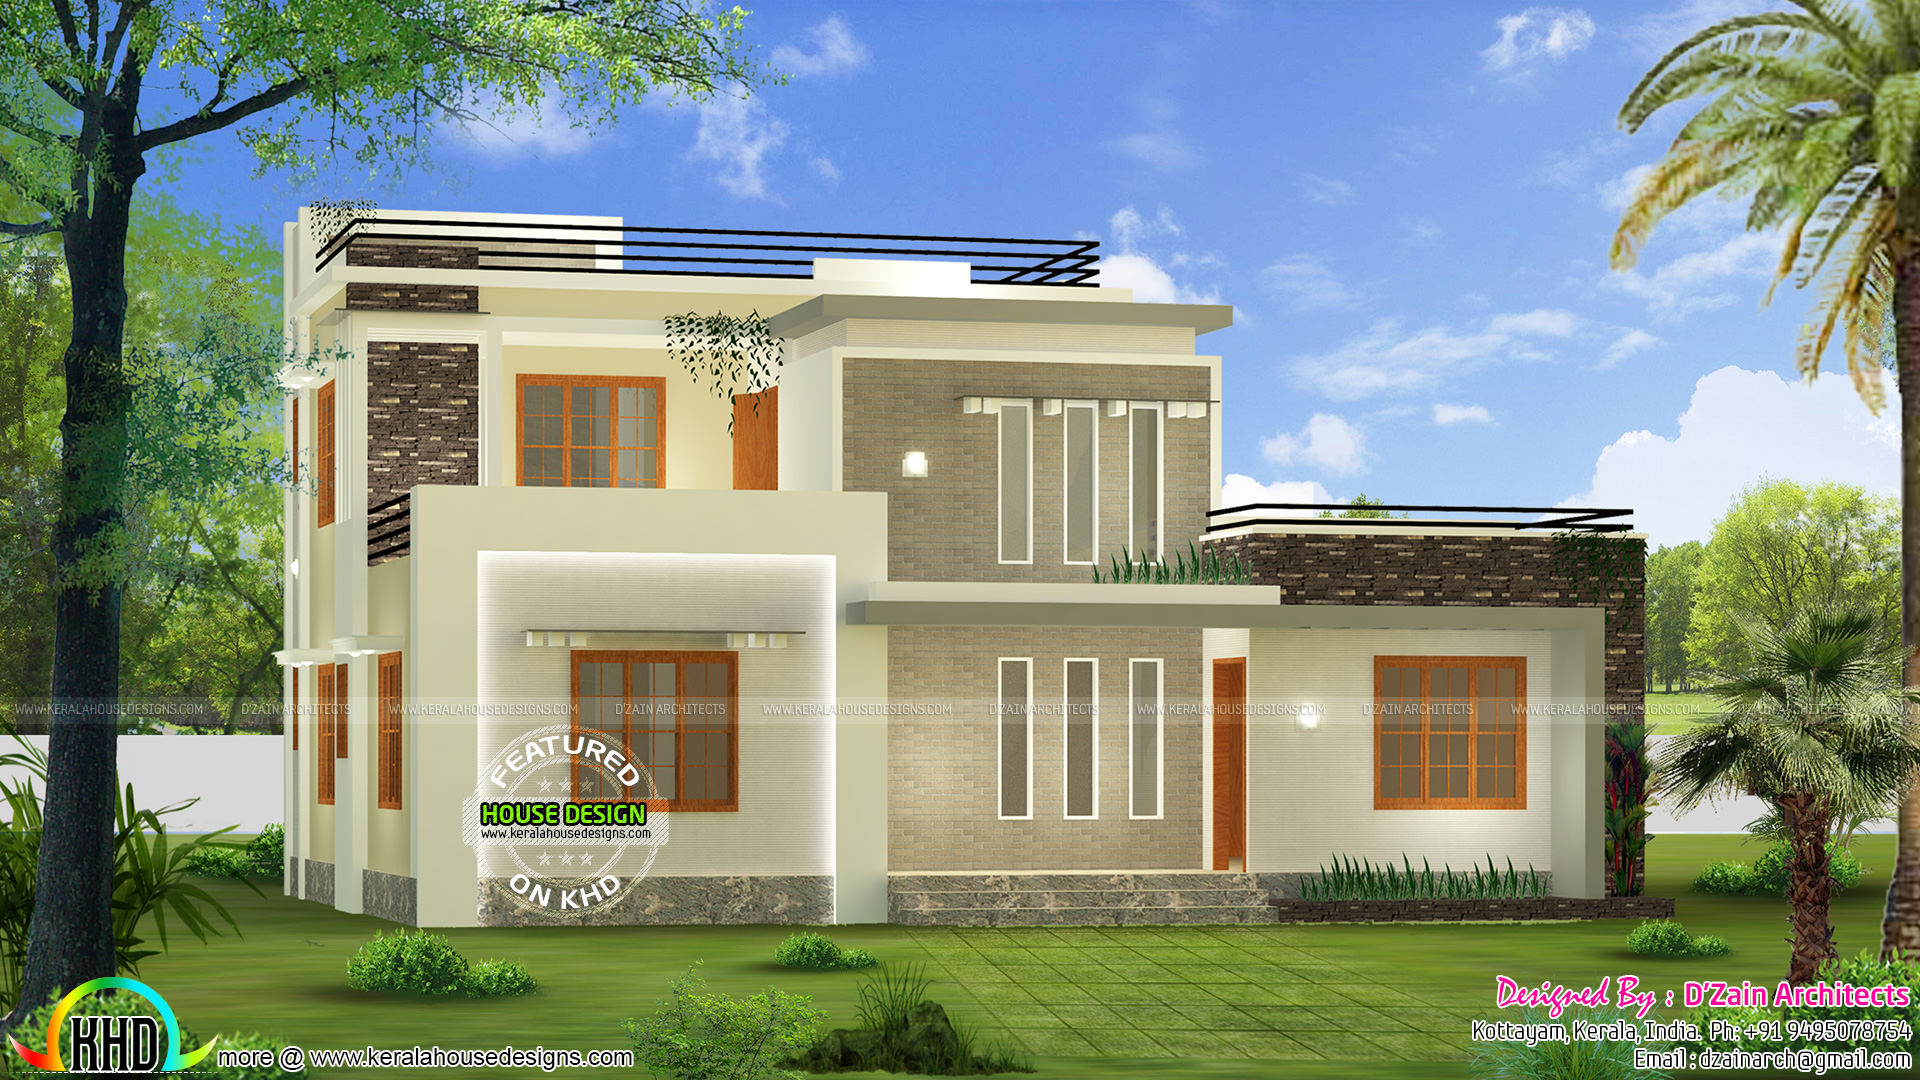 Kerala home design and floor plans New home design plans